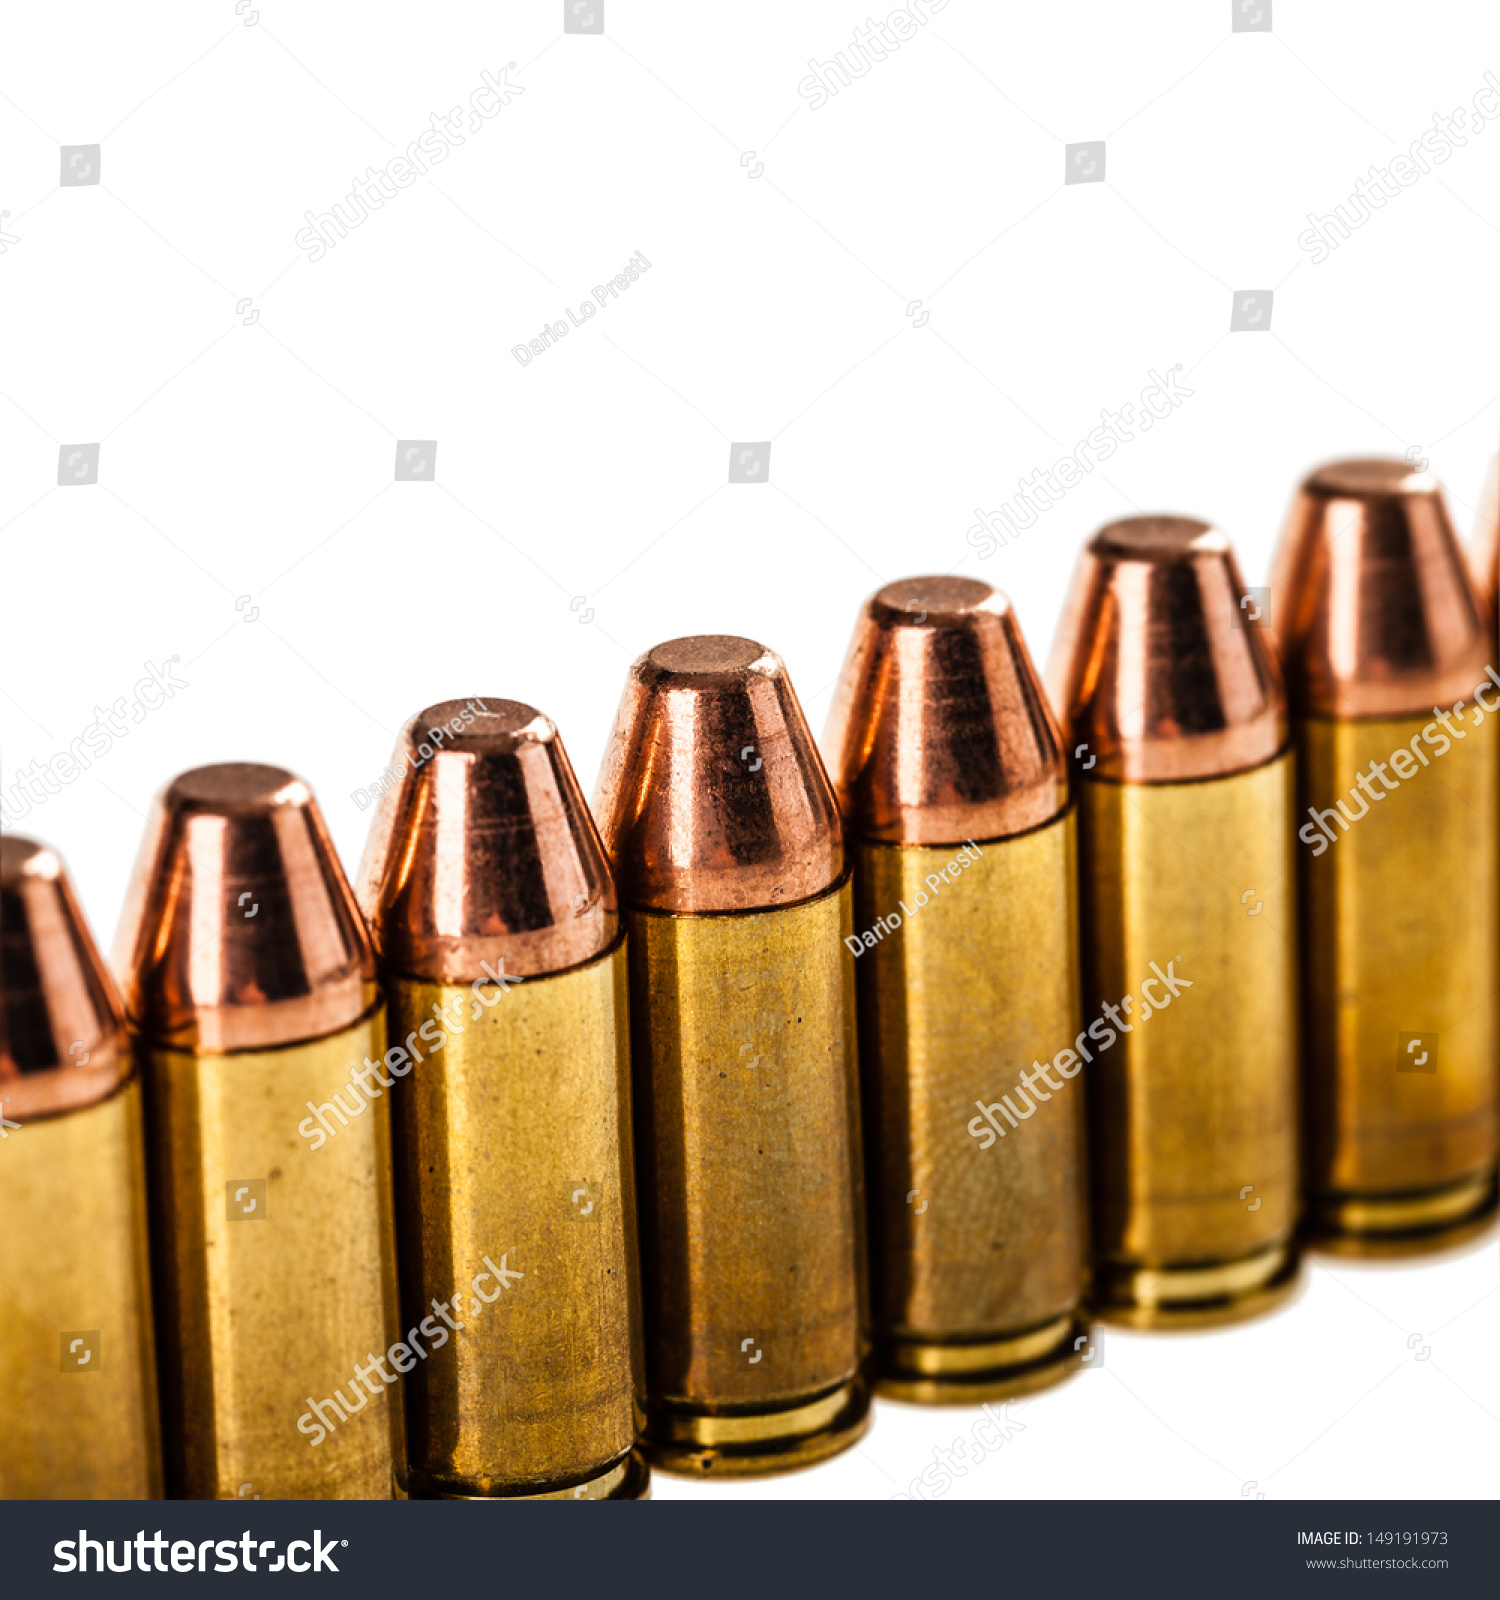 9mm Bullets Arranged Row Isolated Over Stock Photo 149191973 ...